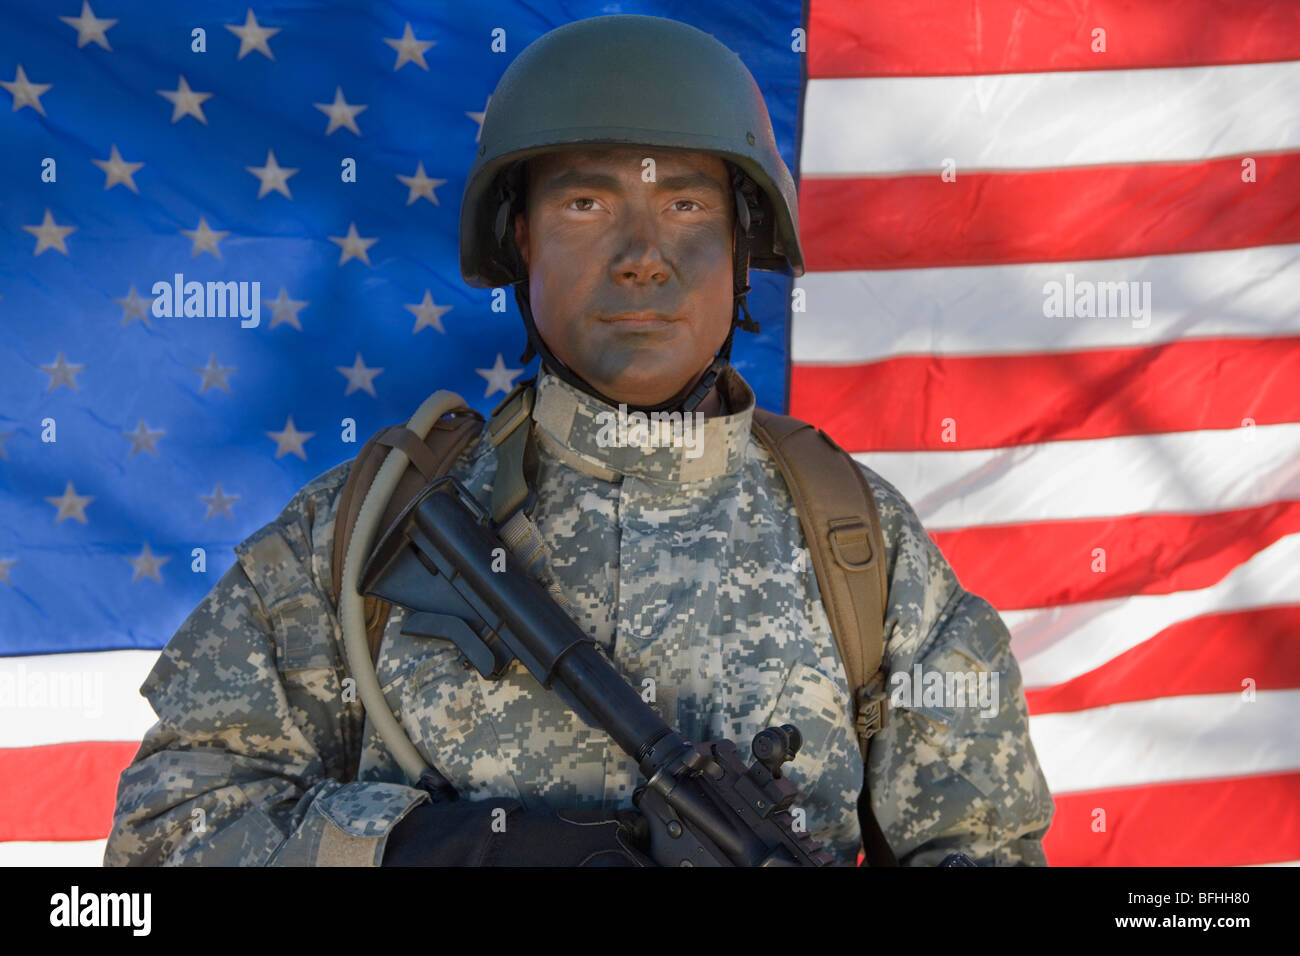 Portrait of US army soldier - Stock Image